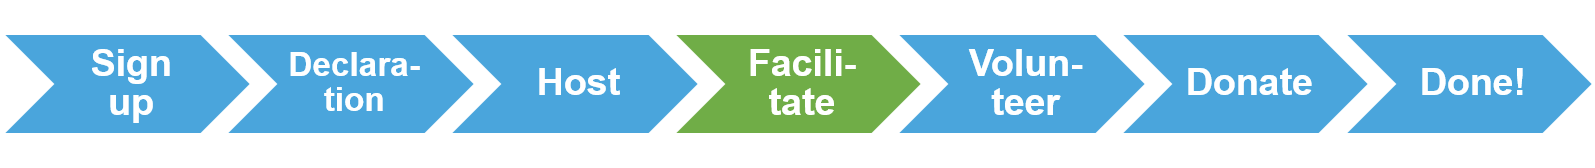 AdminFlow-Facilitate.png